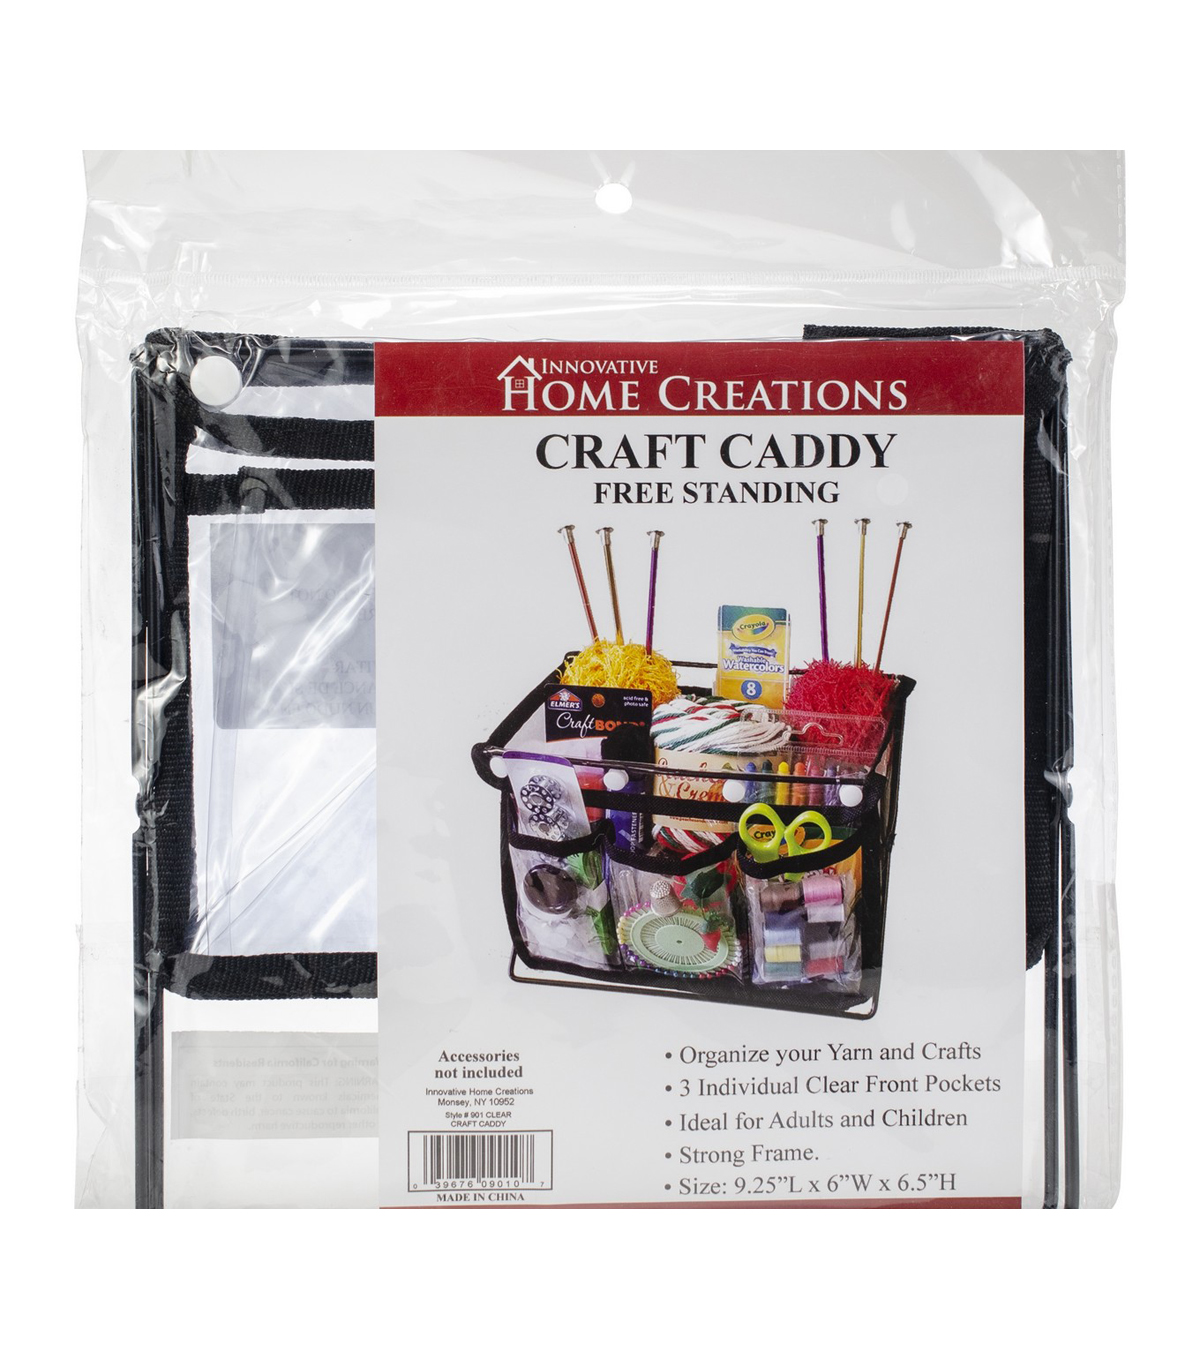 Innovative Home Creations Free Standing Craft Caddy with 3 Pockets